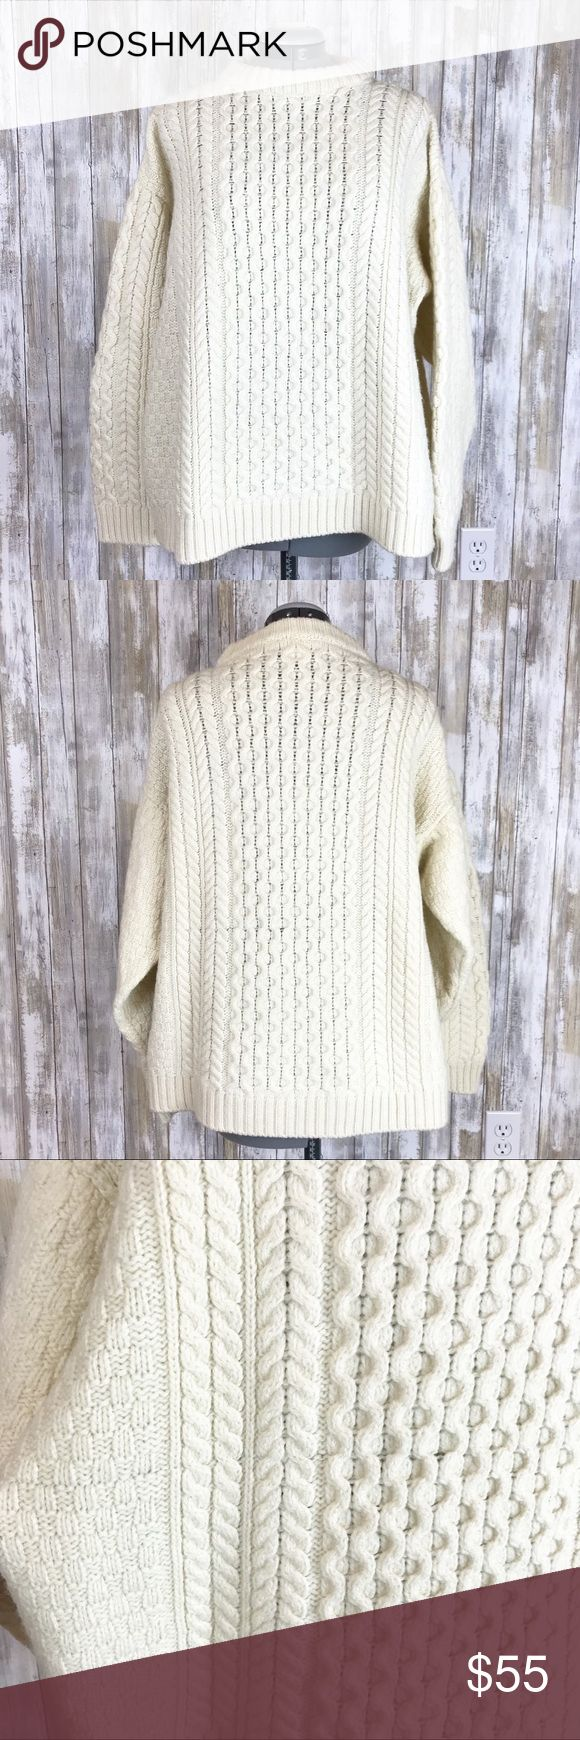 Blarney Woollen Mills Merino wool cream sweater XL Blarney Woollen Mills size XL. 100% Merino Wool cream chunky sweater. Great worn oversized! Back has one line that looks like a seam - as shown in photo. These chunky cream sweaters are so on trend - get this Blarney chunky sweater today! Blarney Sweaters